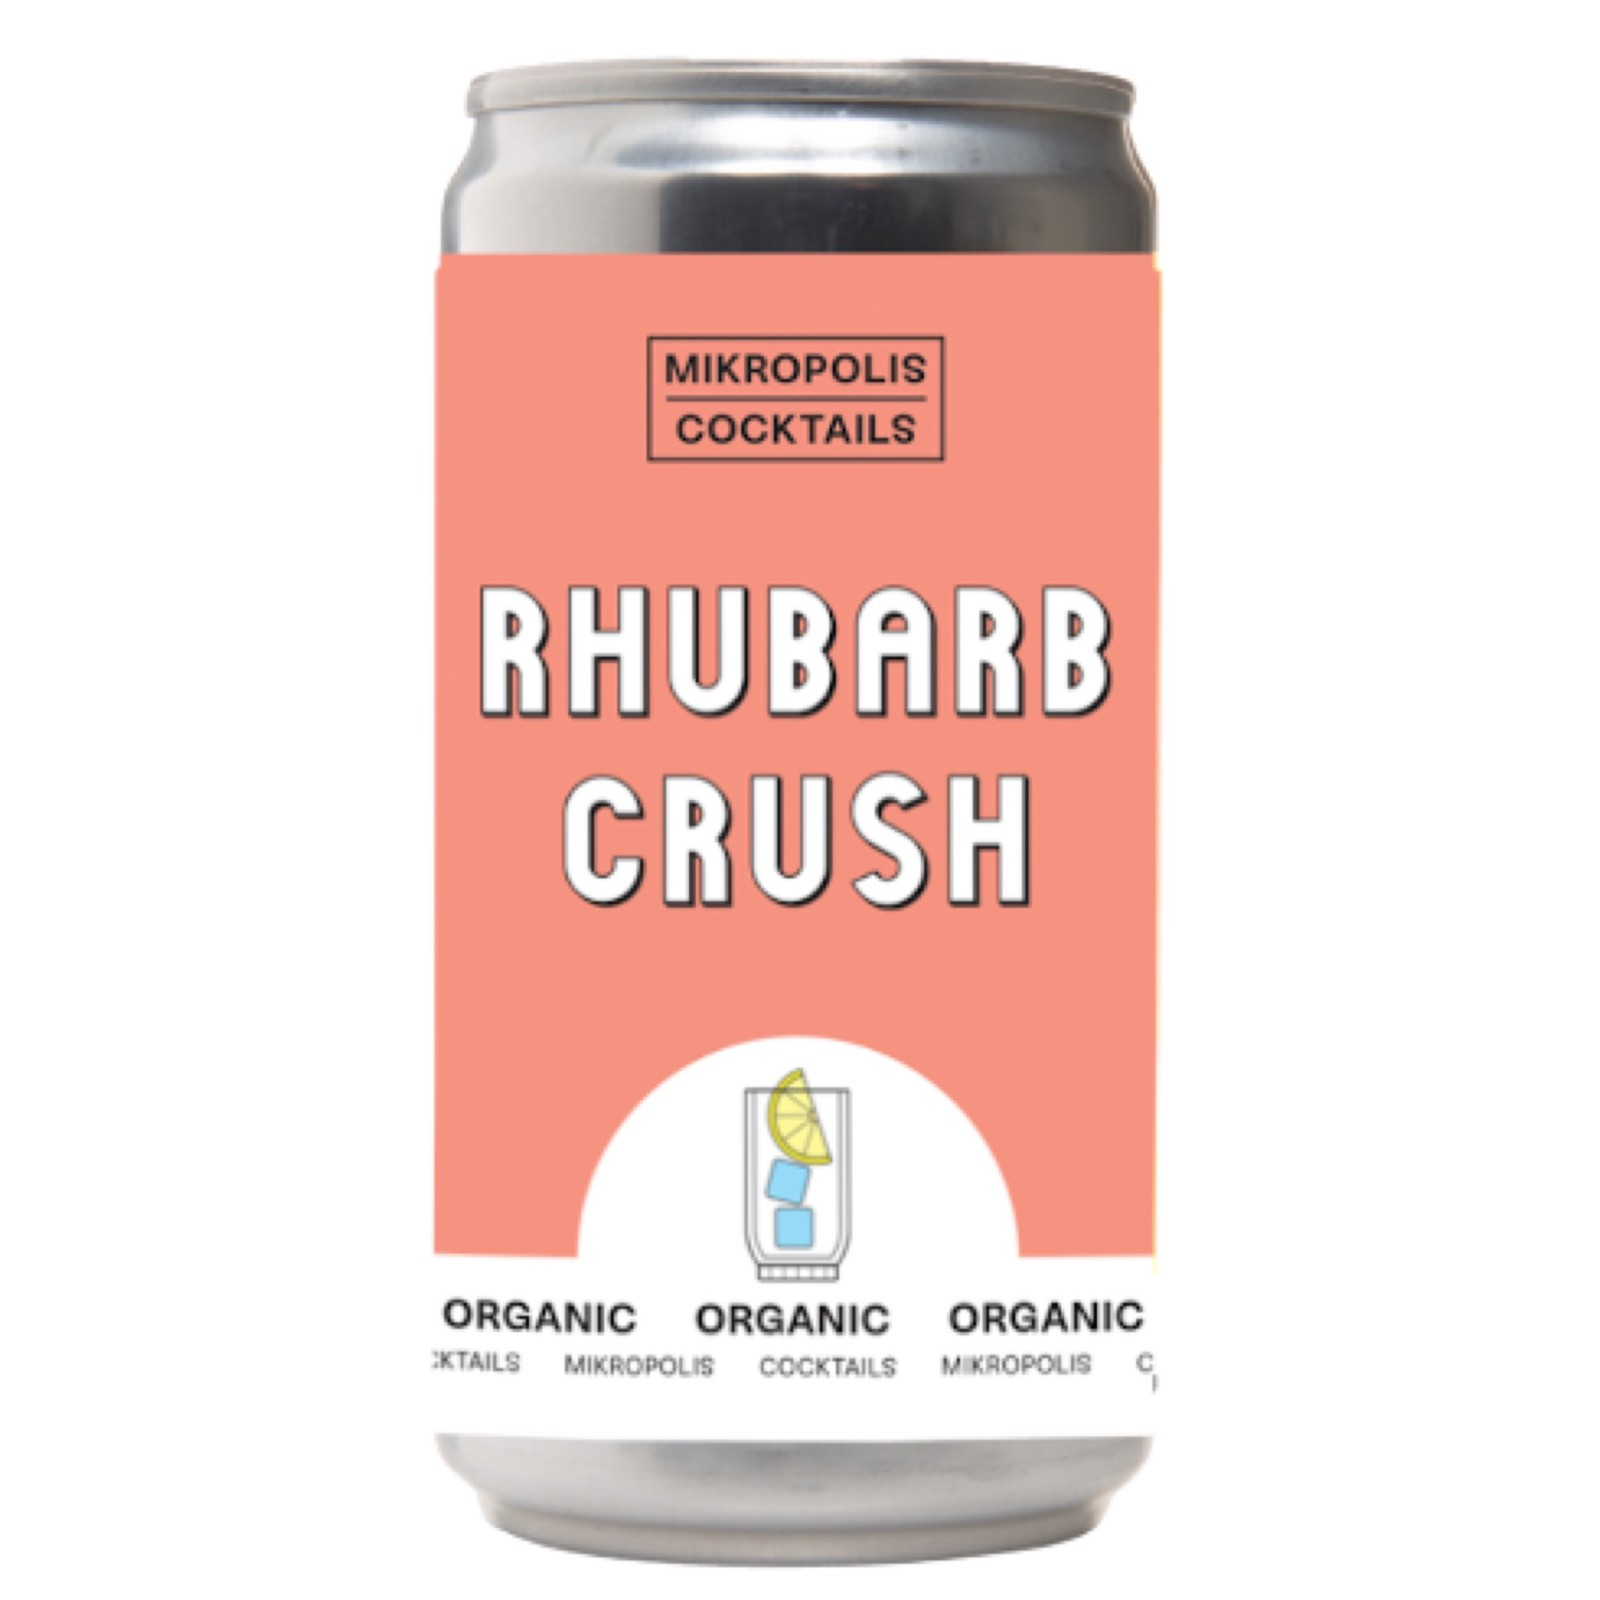 Rhbarb Crush 6.5% 250ml Mikropolis Cocktails